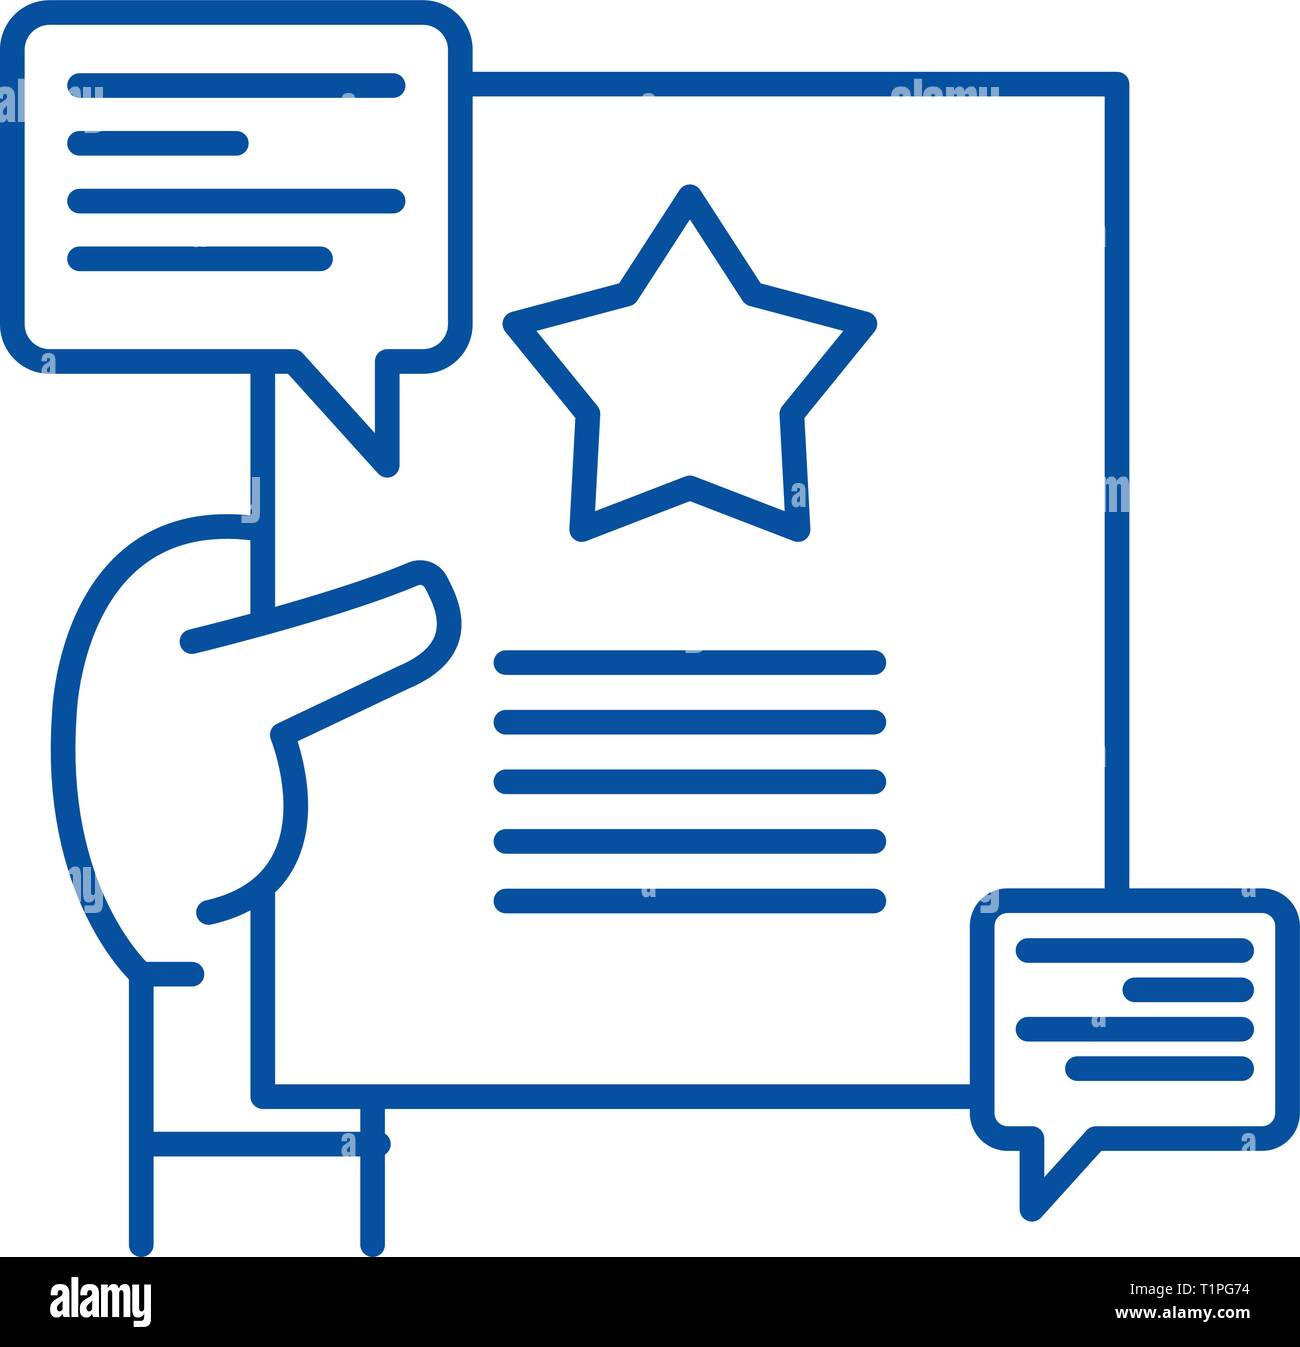 Recommendations line icon concept. Recommendations flat  vector symbol, sign, outline illustration. - Stock Image